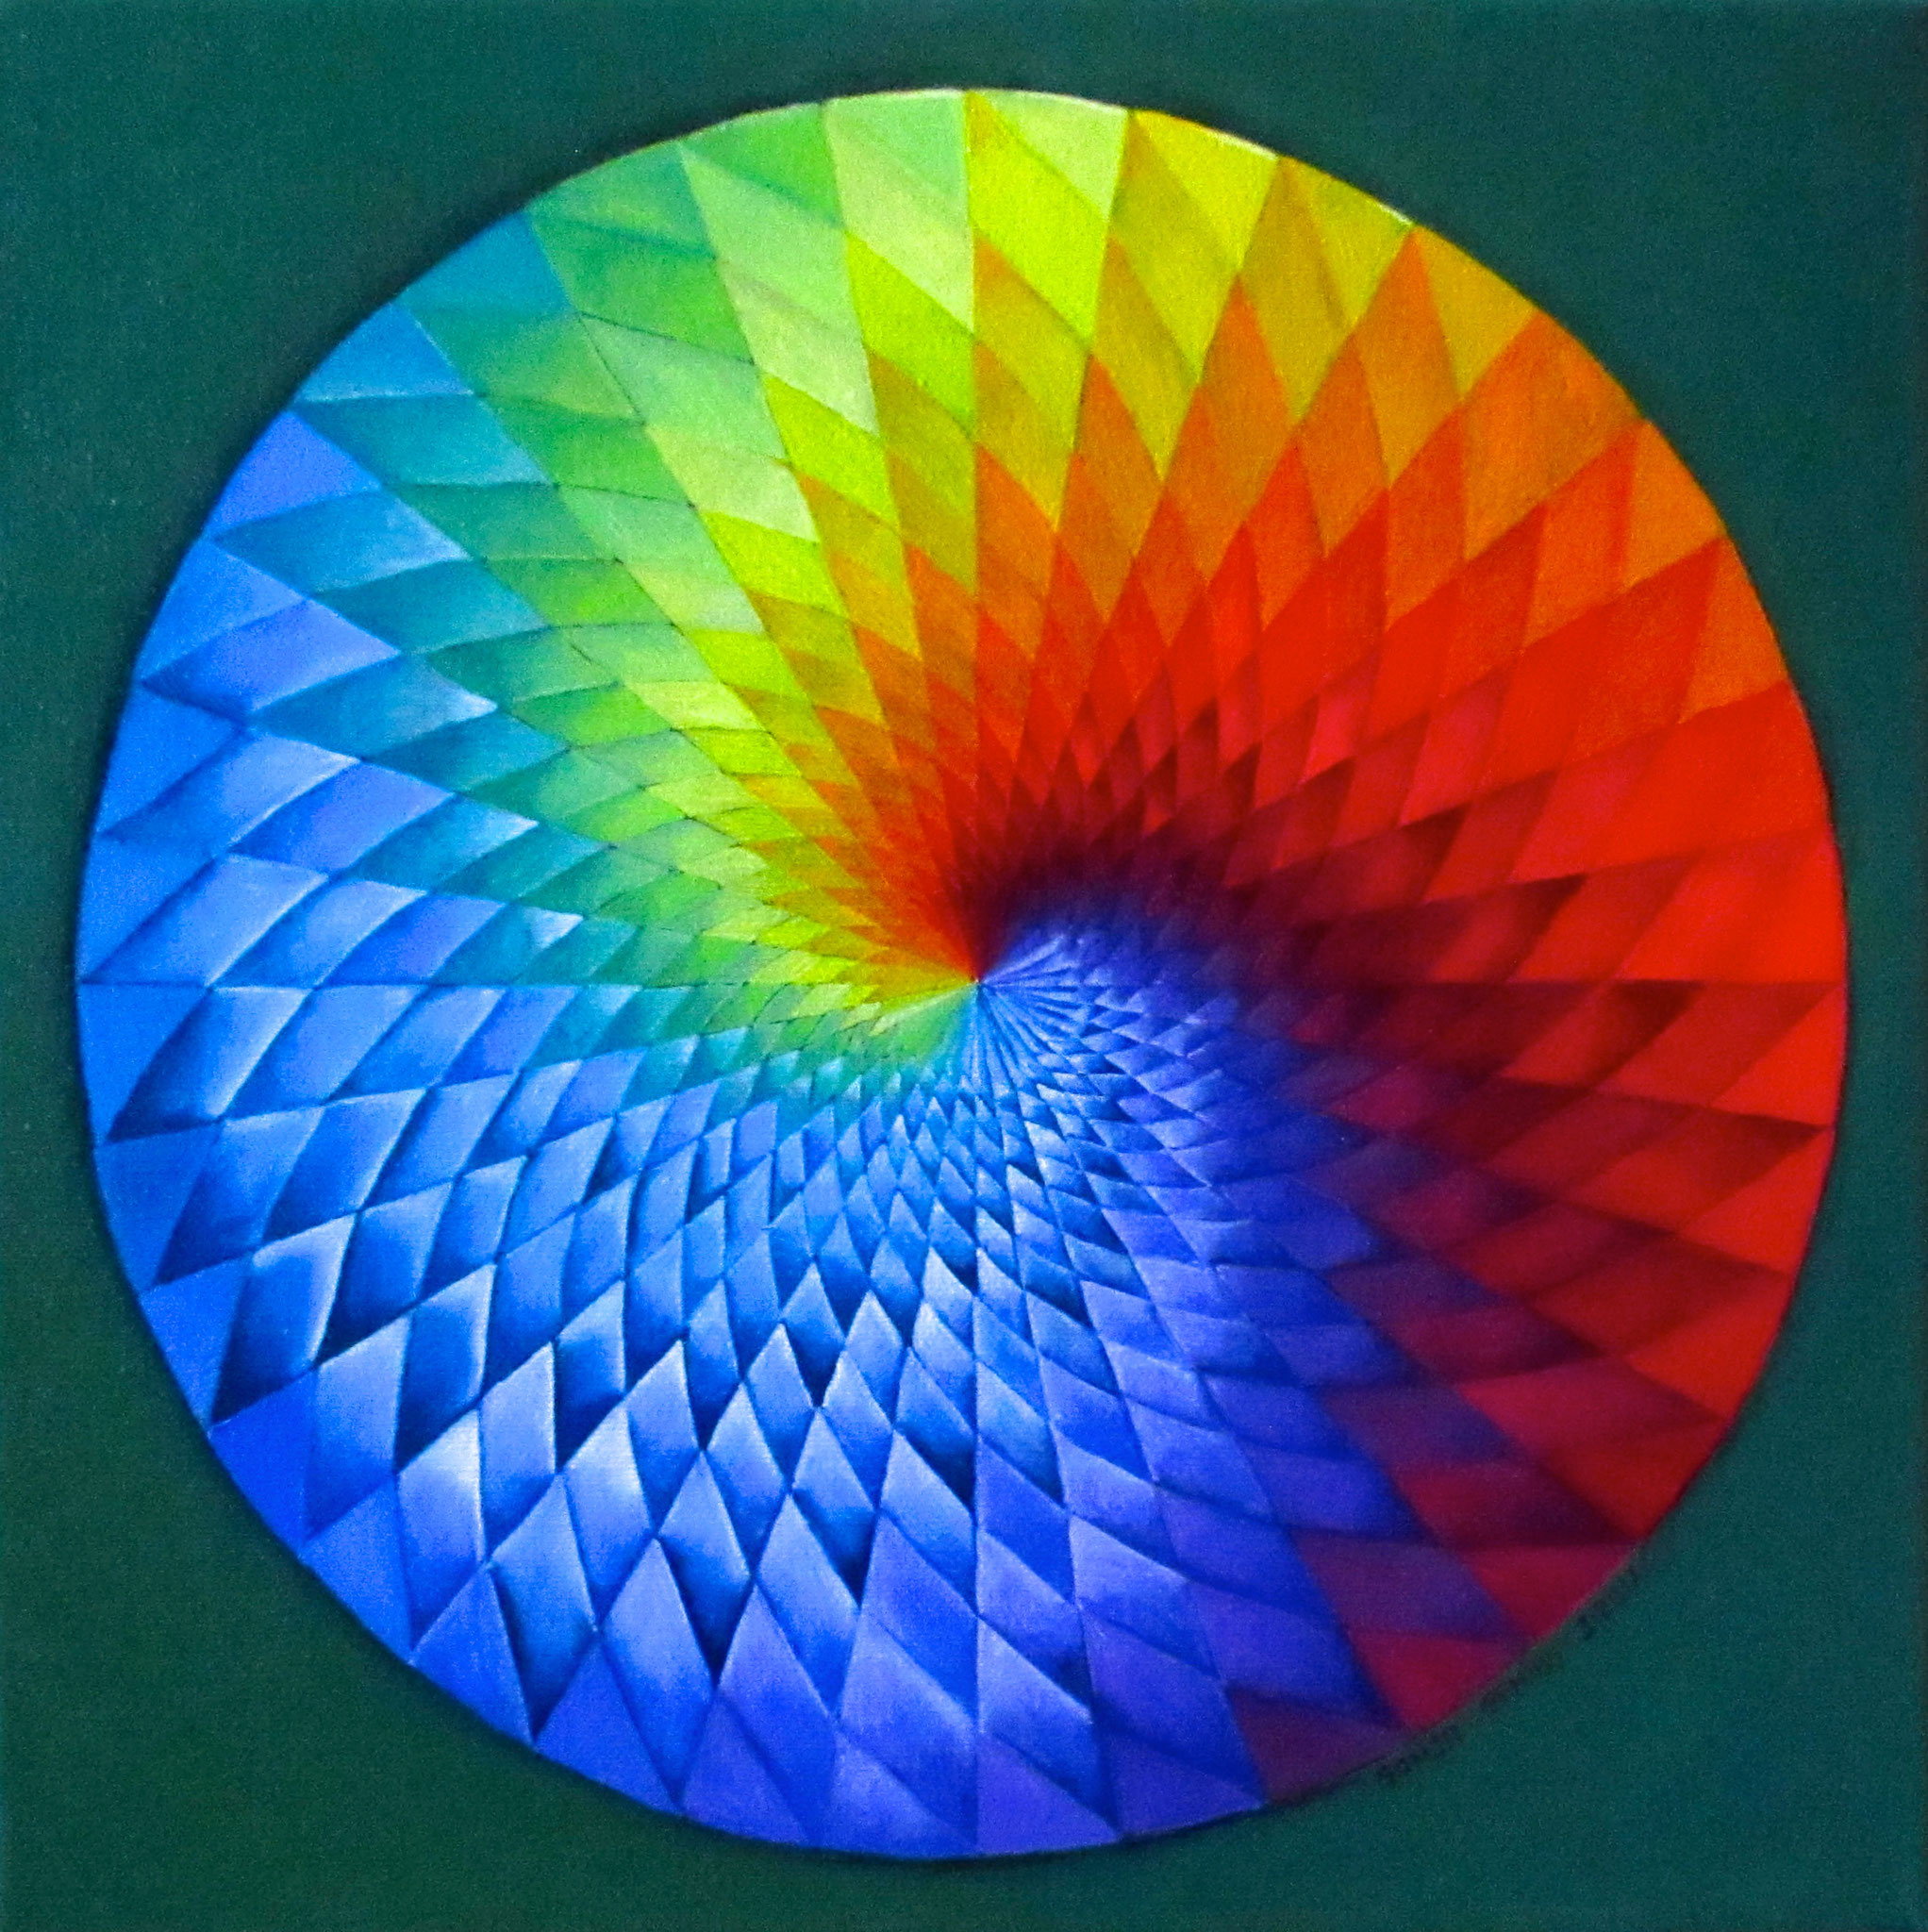 Rainbow Spiral, oil on canvas 12x12, March 2017 (3)